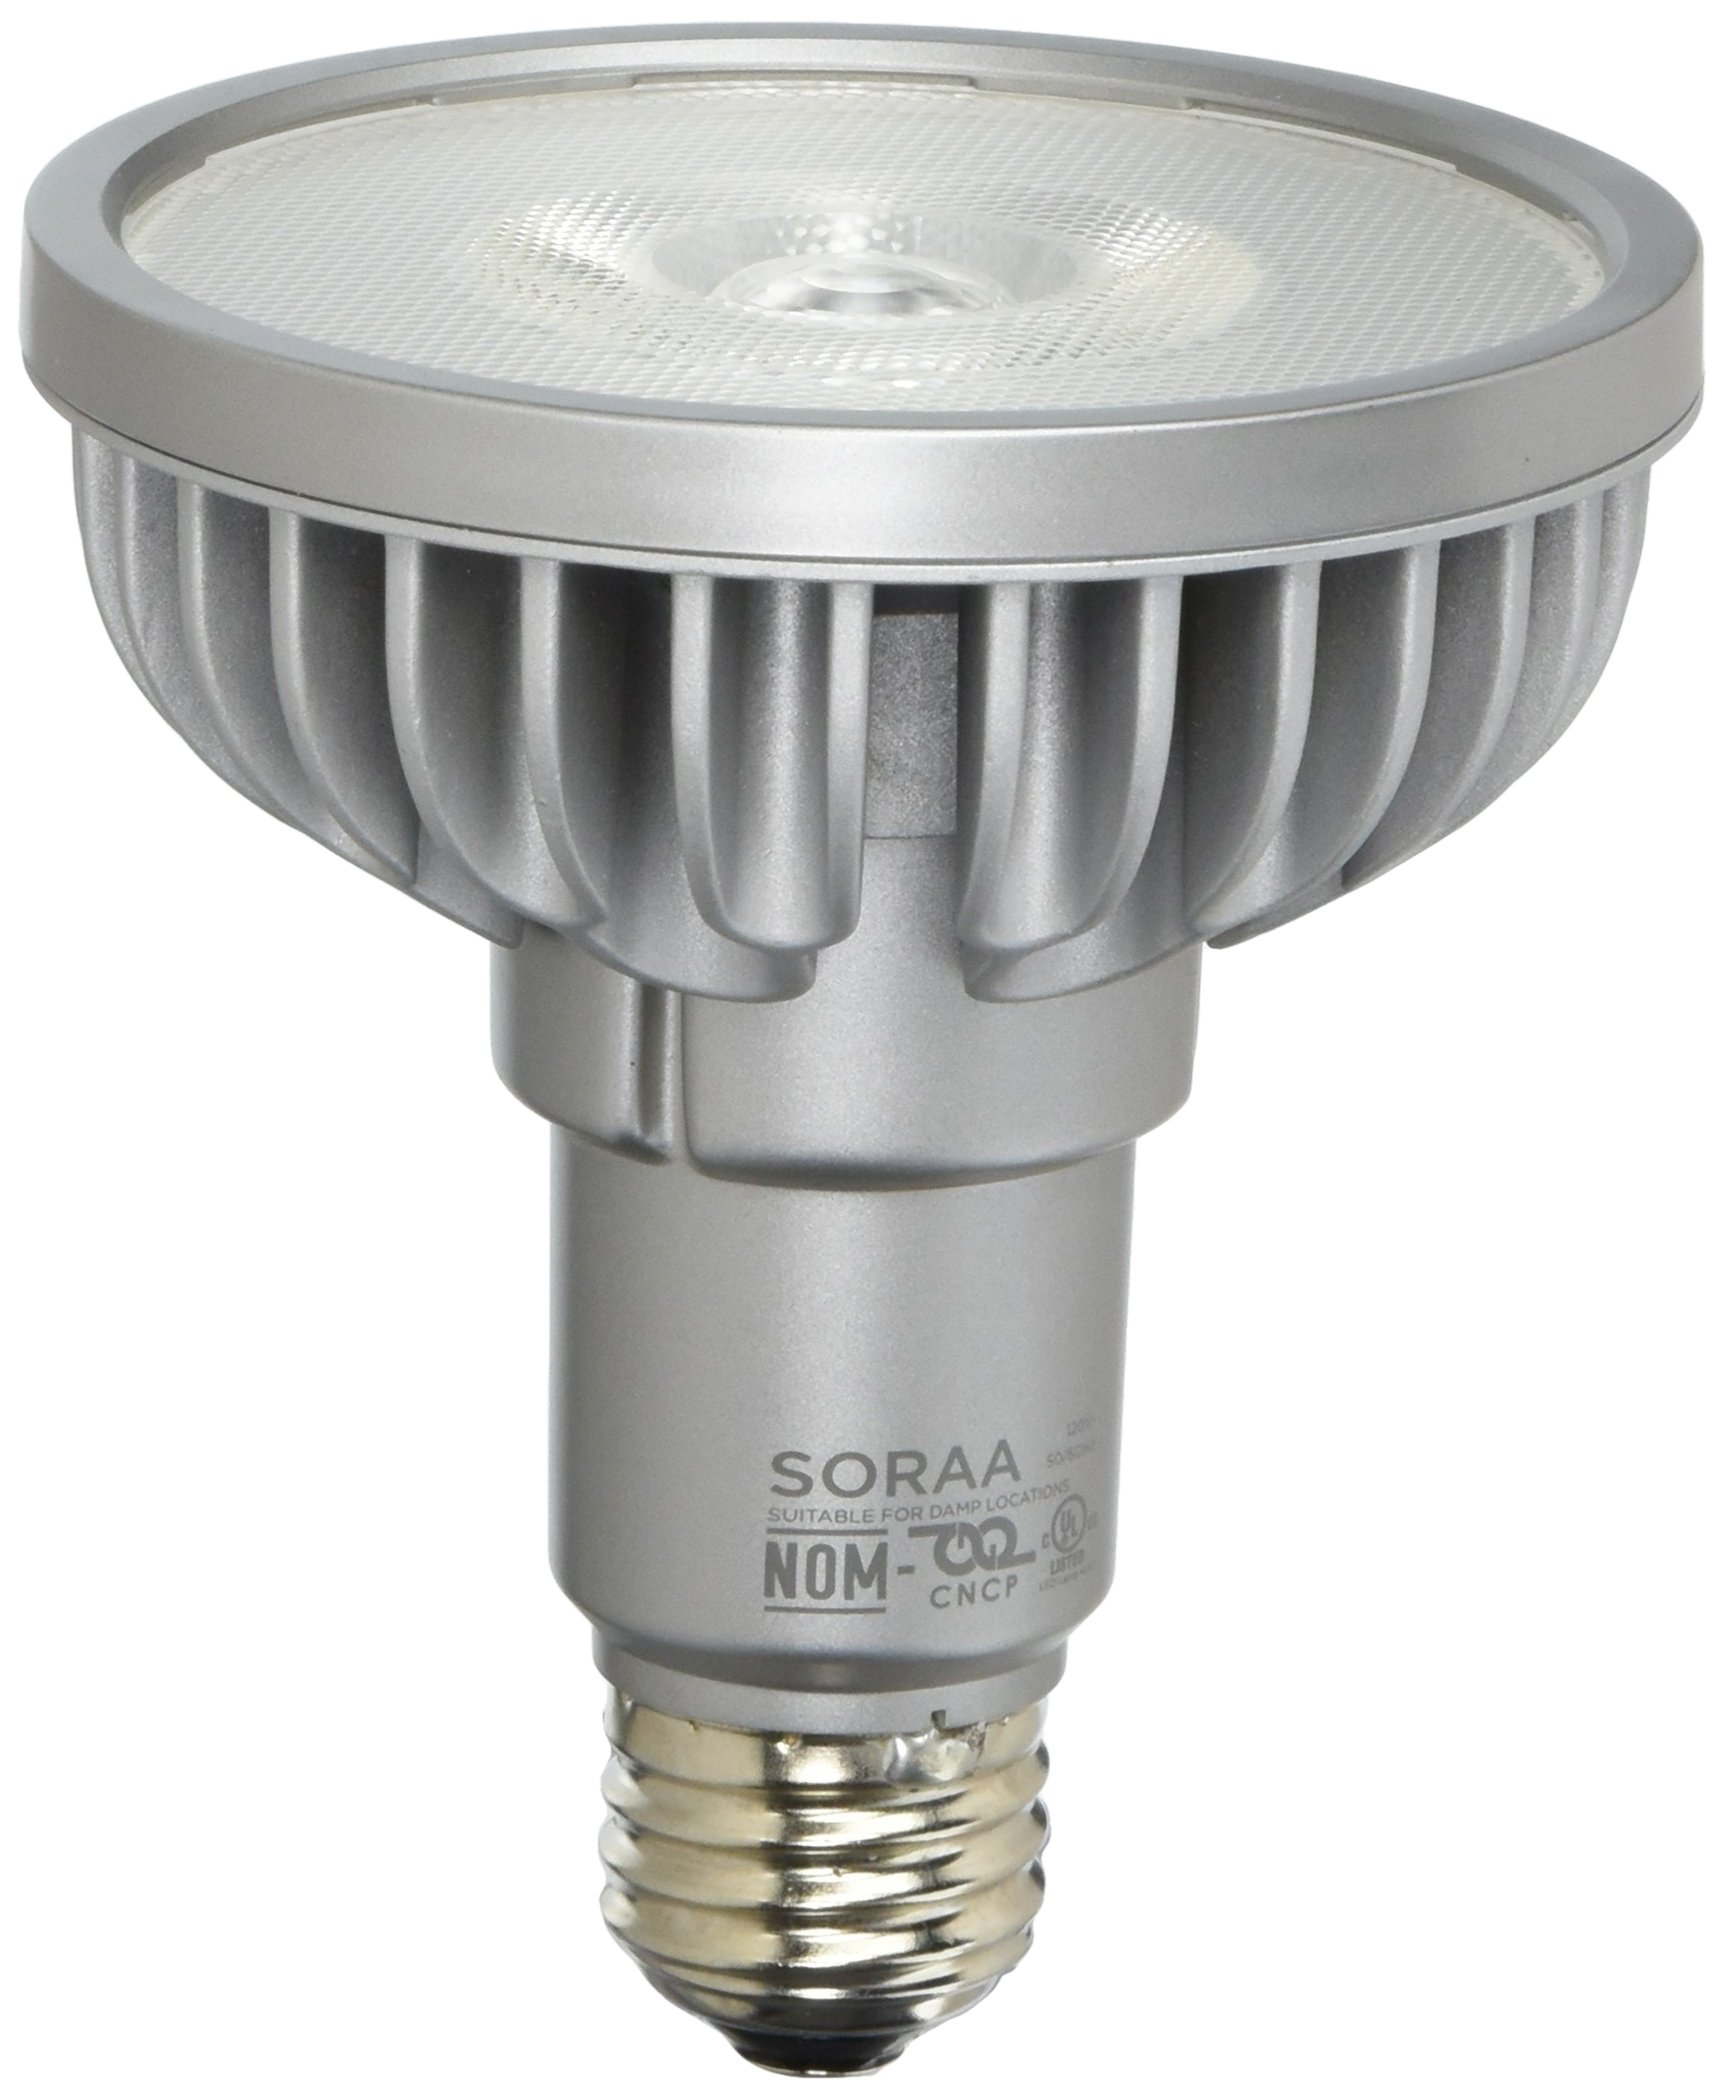 Bulbrite SP30L-18-25D-830-03 SORAA 18.5W LED PAR30L 3000K PREM. 25° Dimmable Light Bulb, Silver